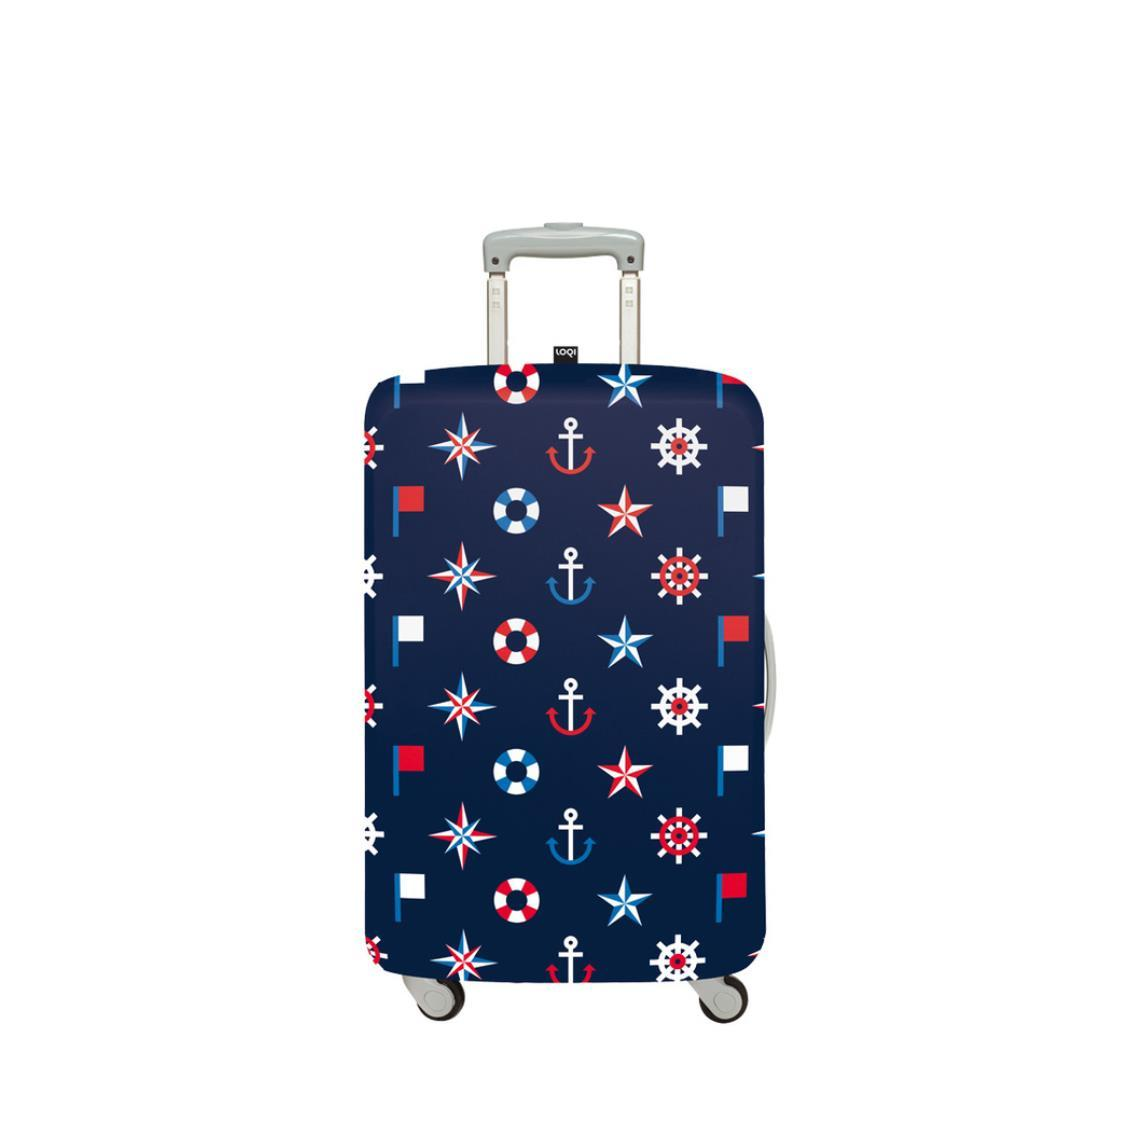 Artist Luggage Cover Nautical - Classic